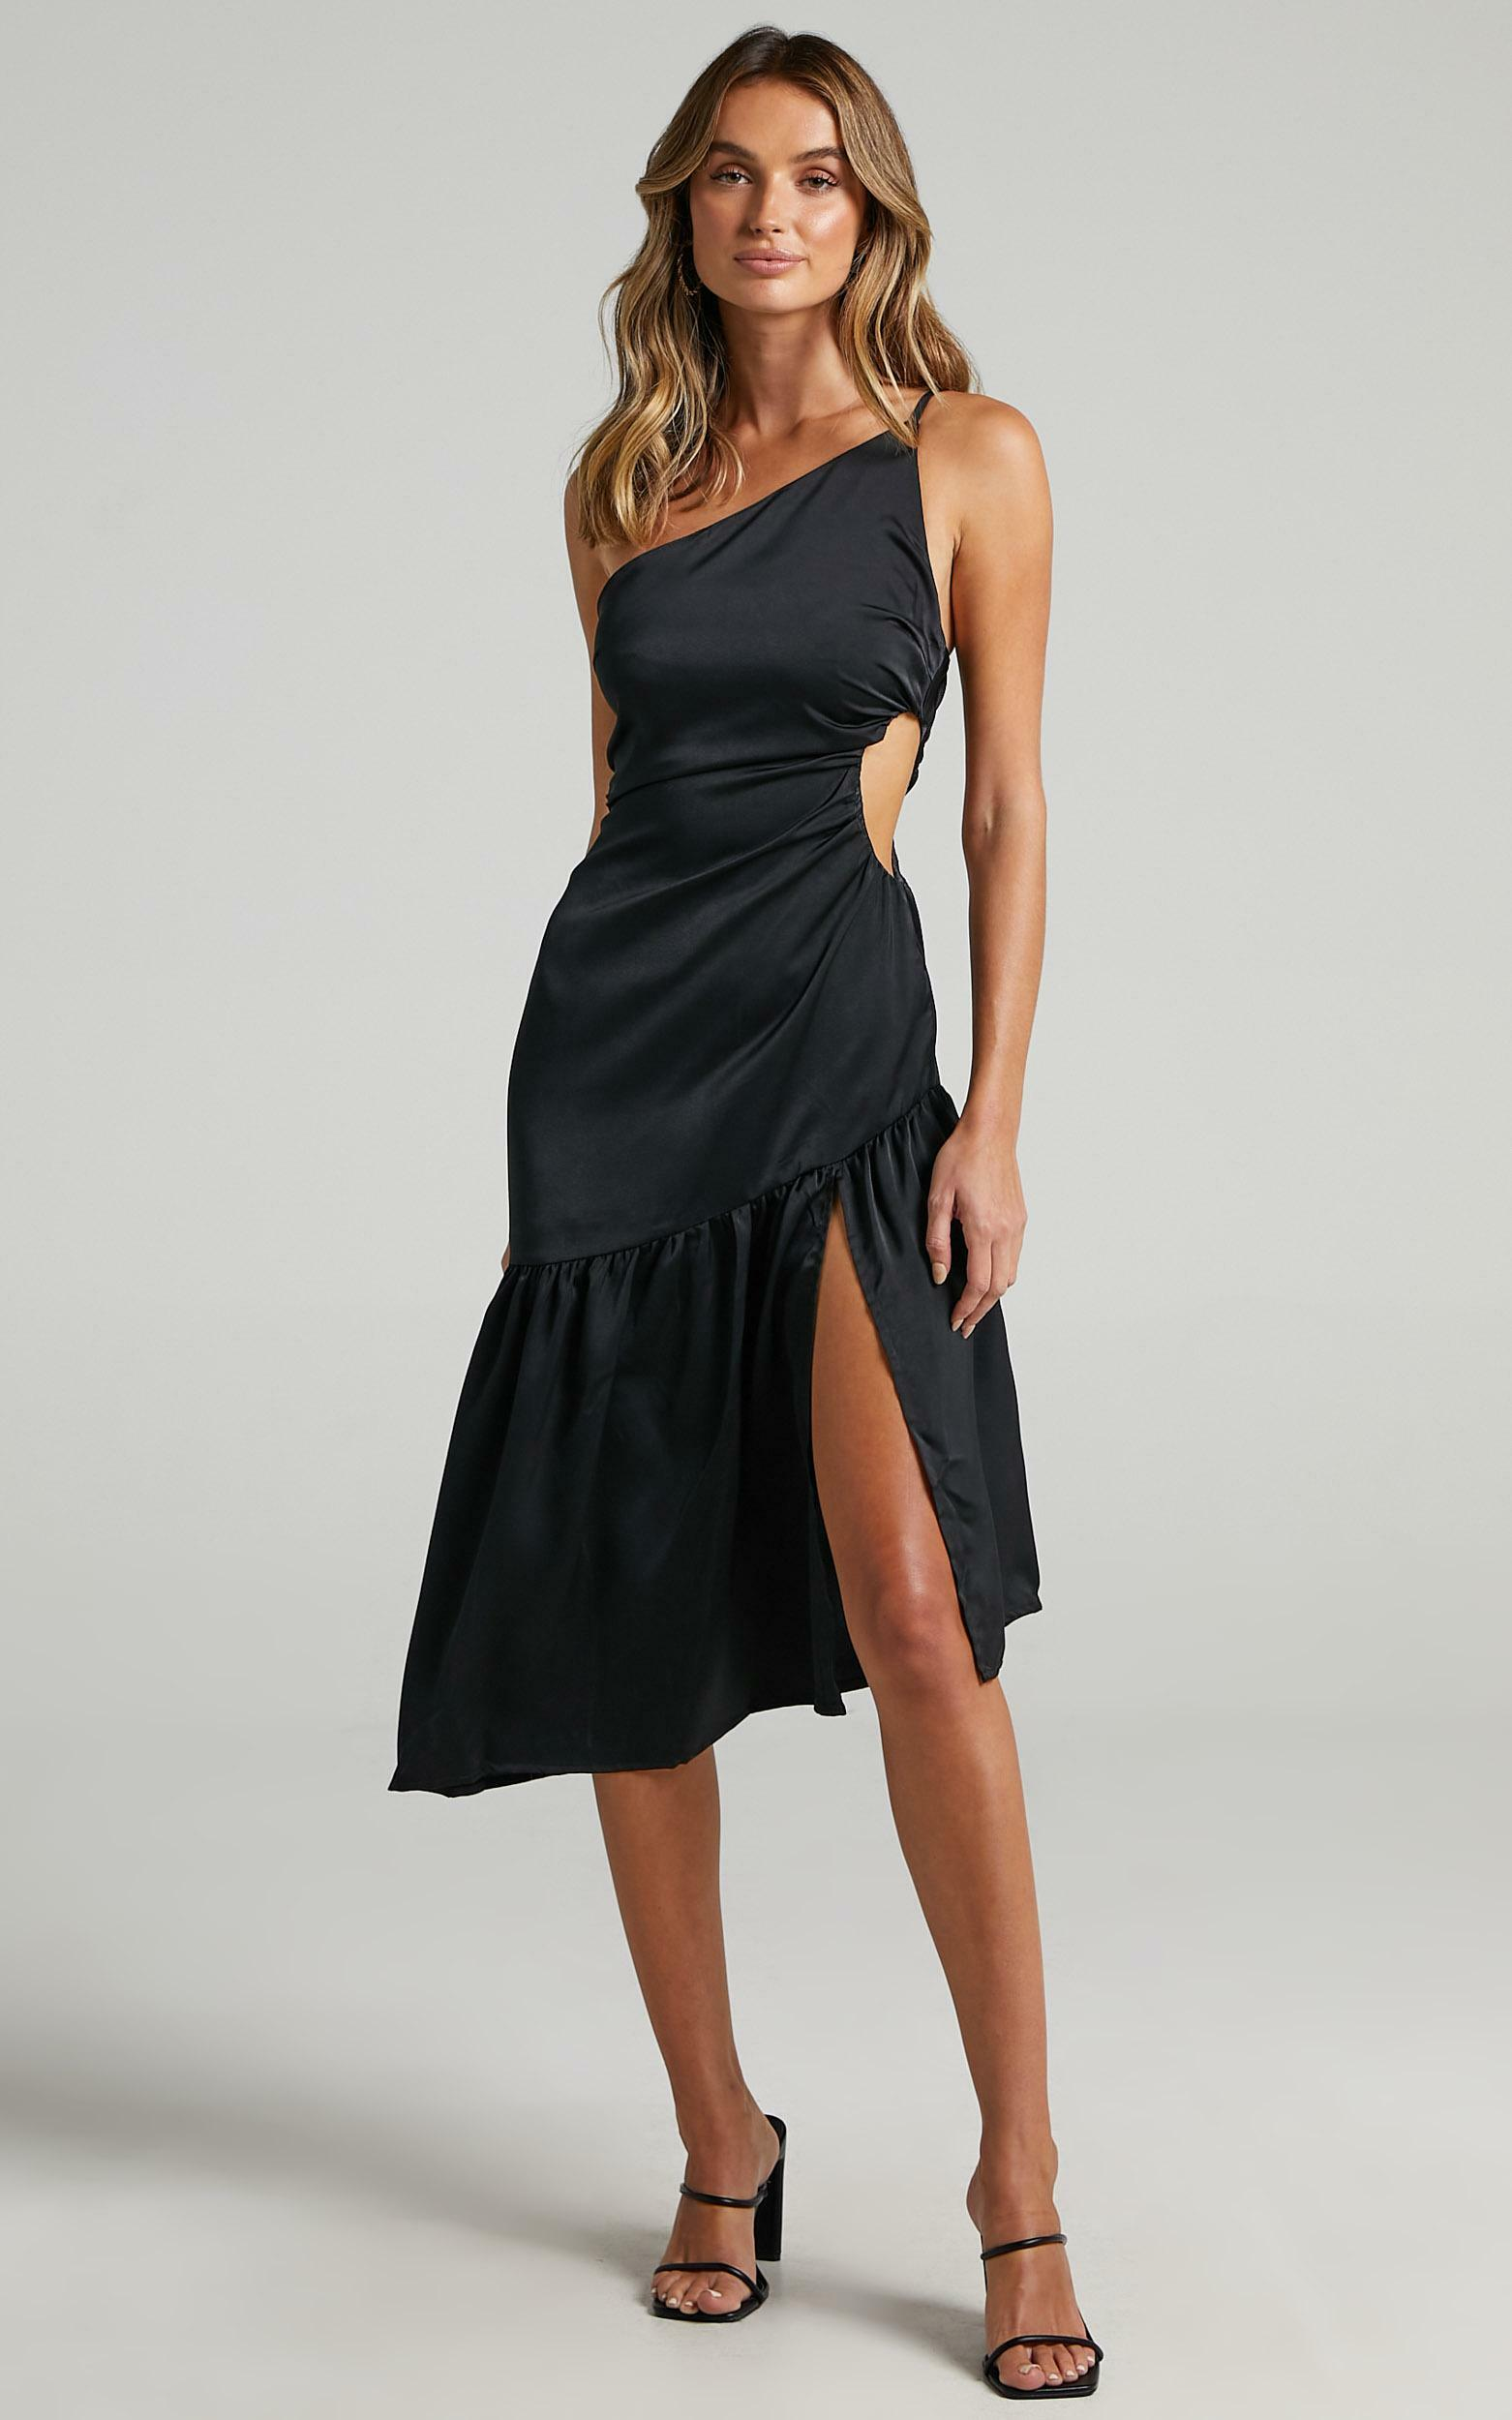 Octavia Cut Out Waist Midi Dress in black - 6 (XS), Black, hi-res image number null